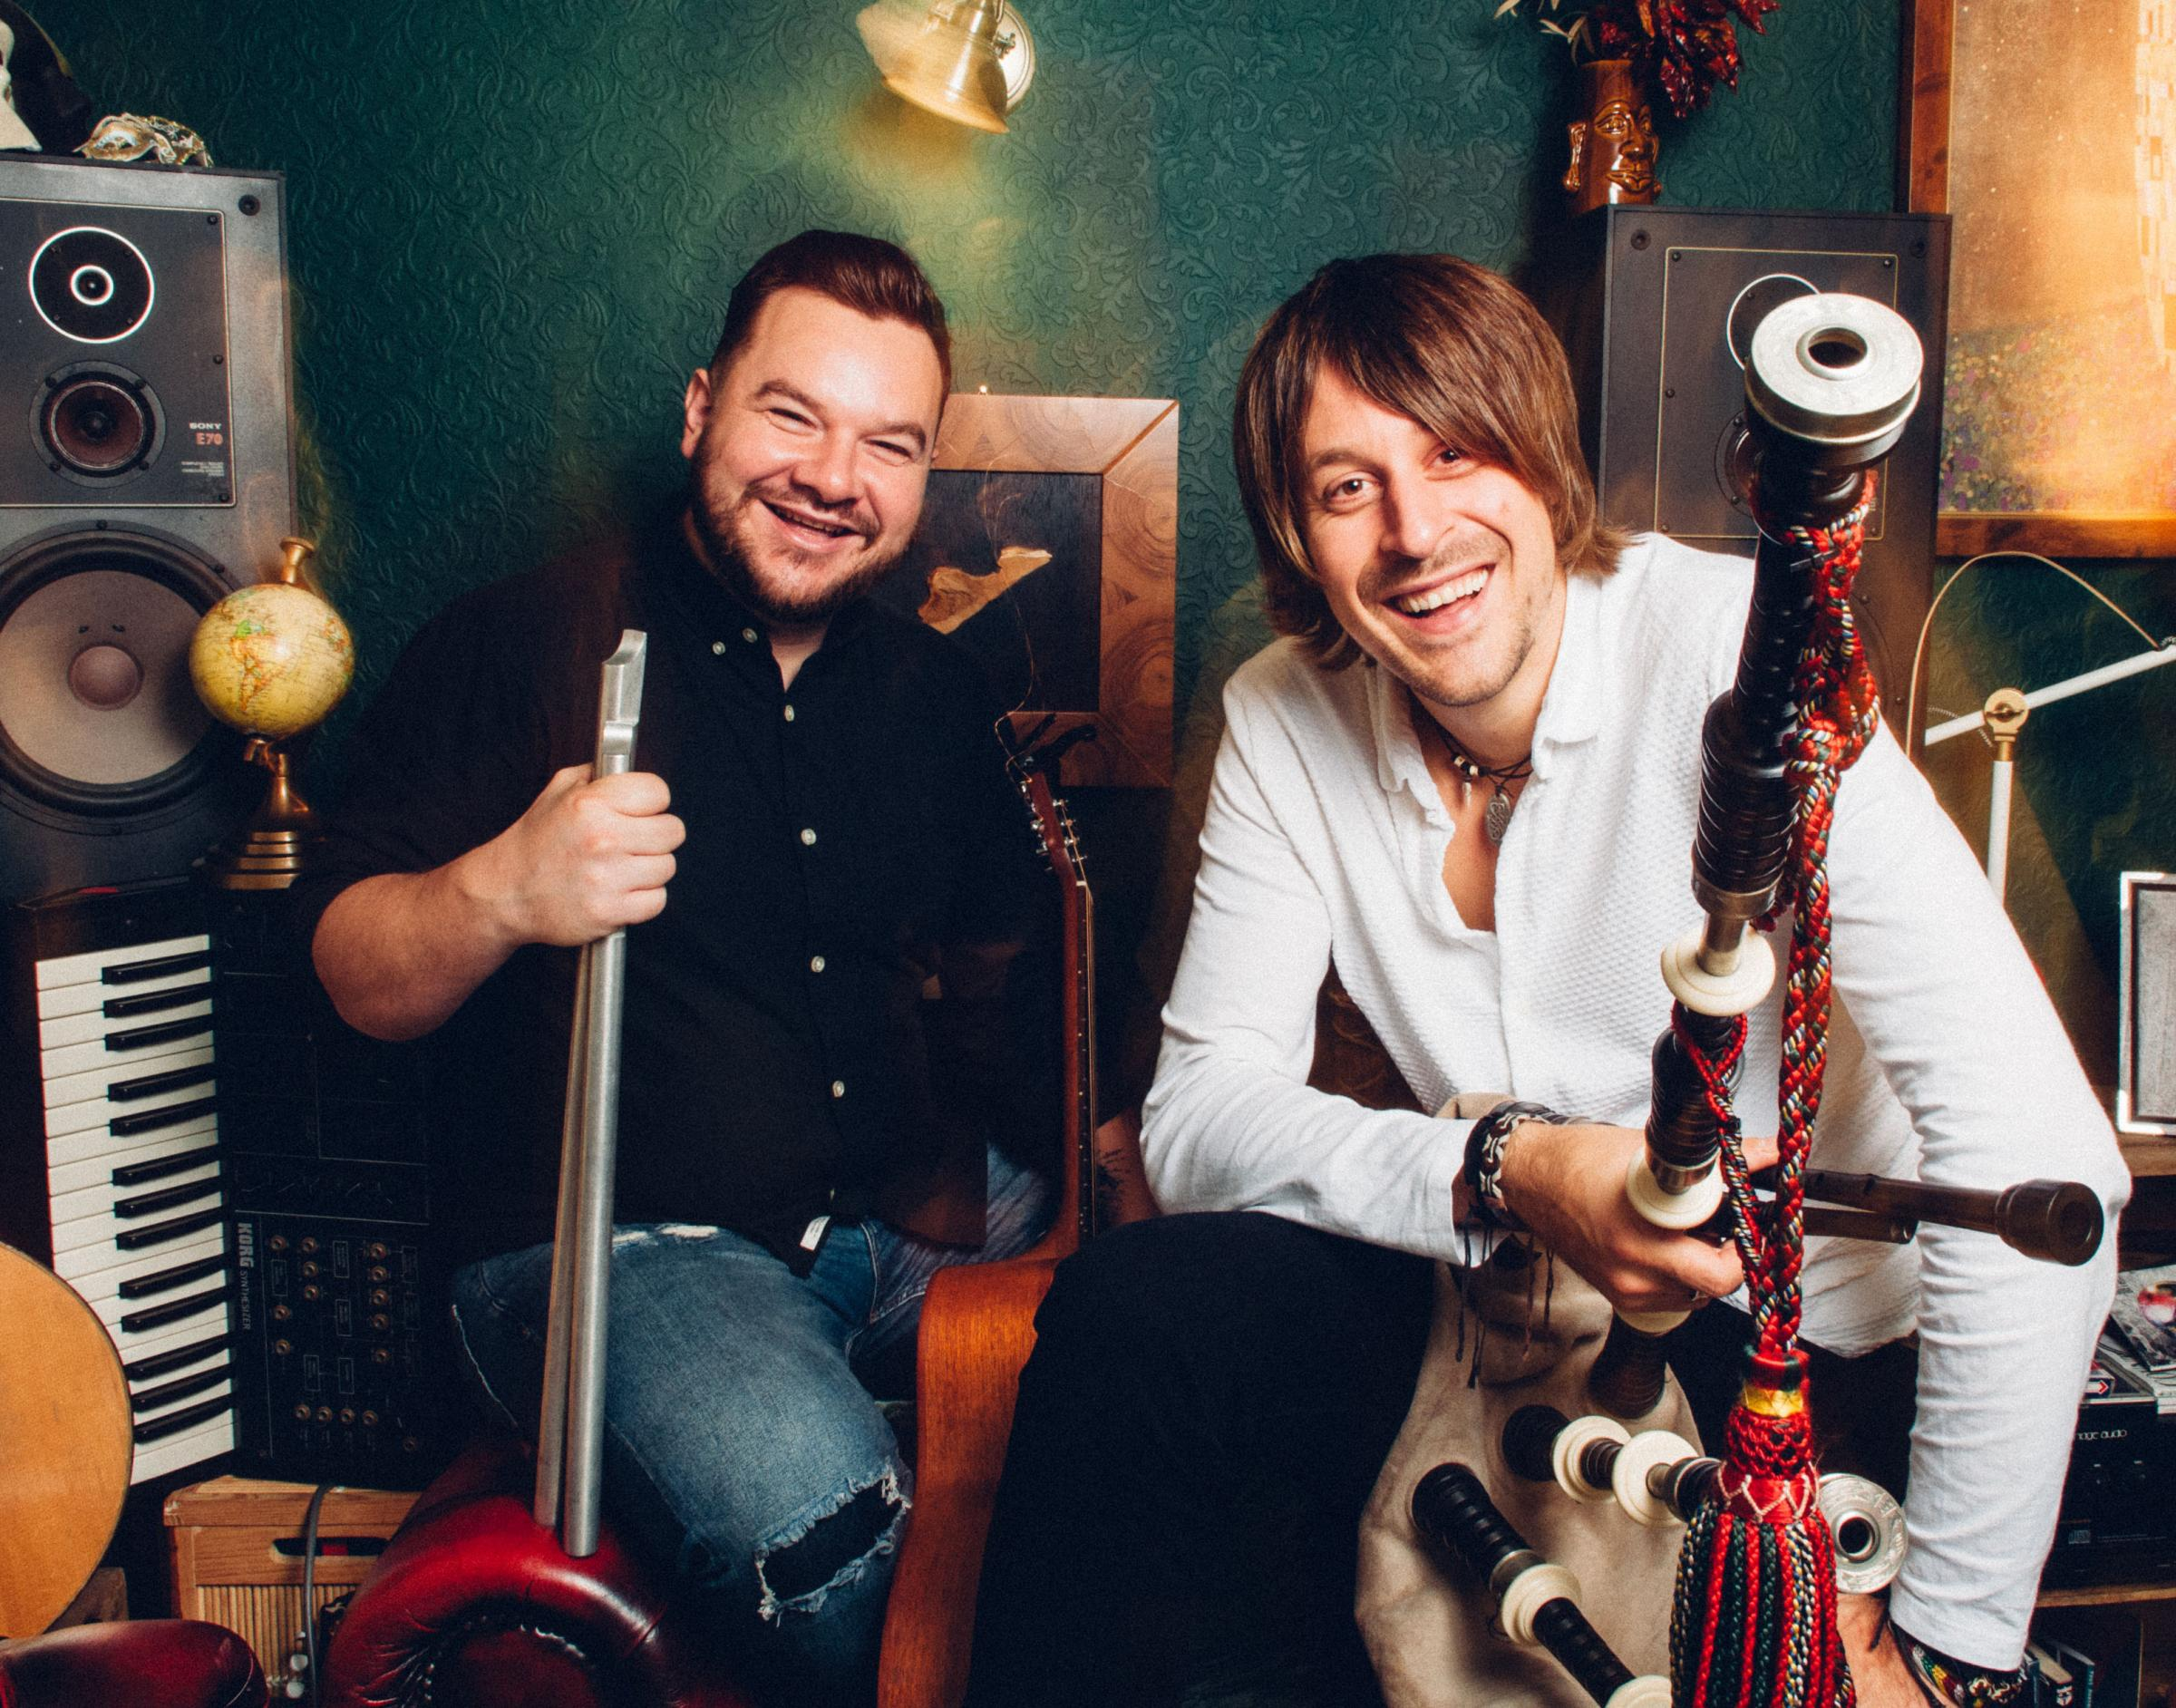 Ross Ainslie and Ali Hutton are multi-instrumentalists